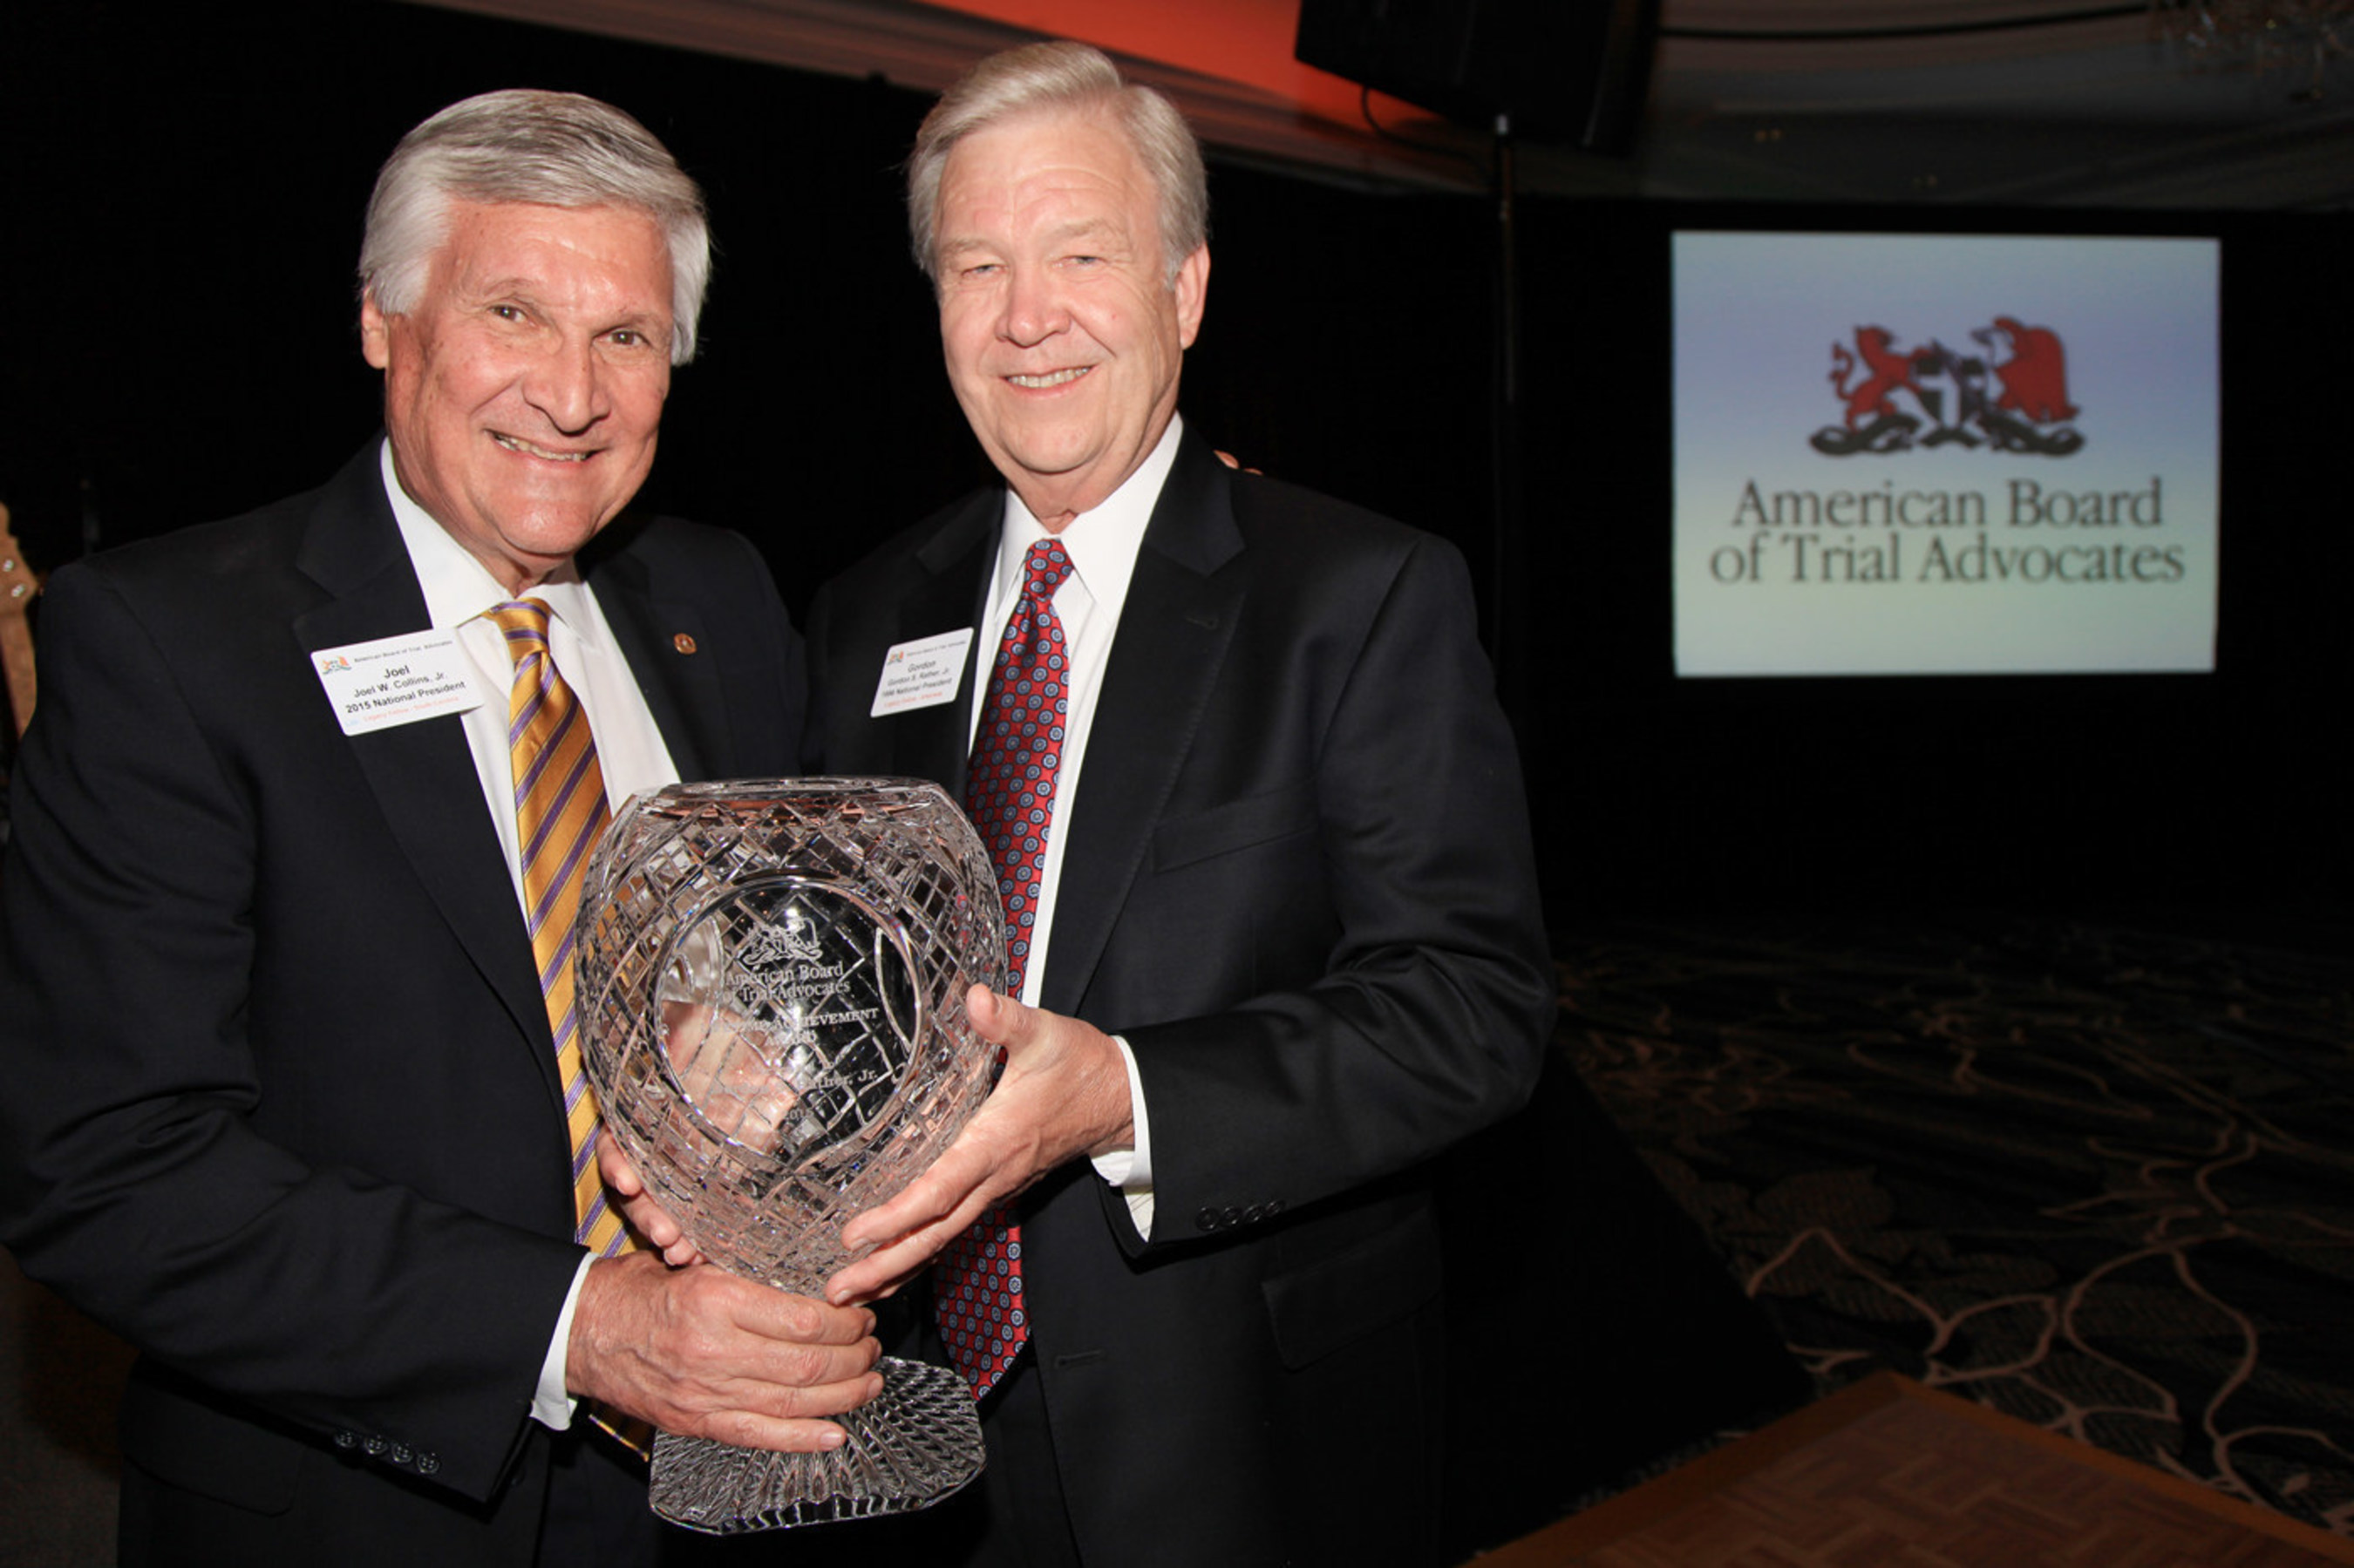 Gordon S. Rather, Jr., (right) receives the Lifetime Achievement Award from National President Joel W. Collins, Jr., of the American Board of Trial Advocates.